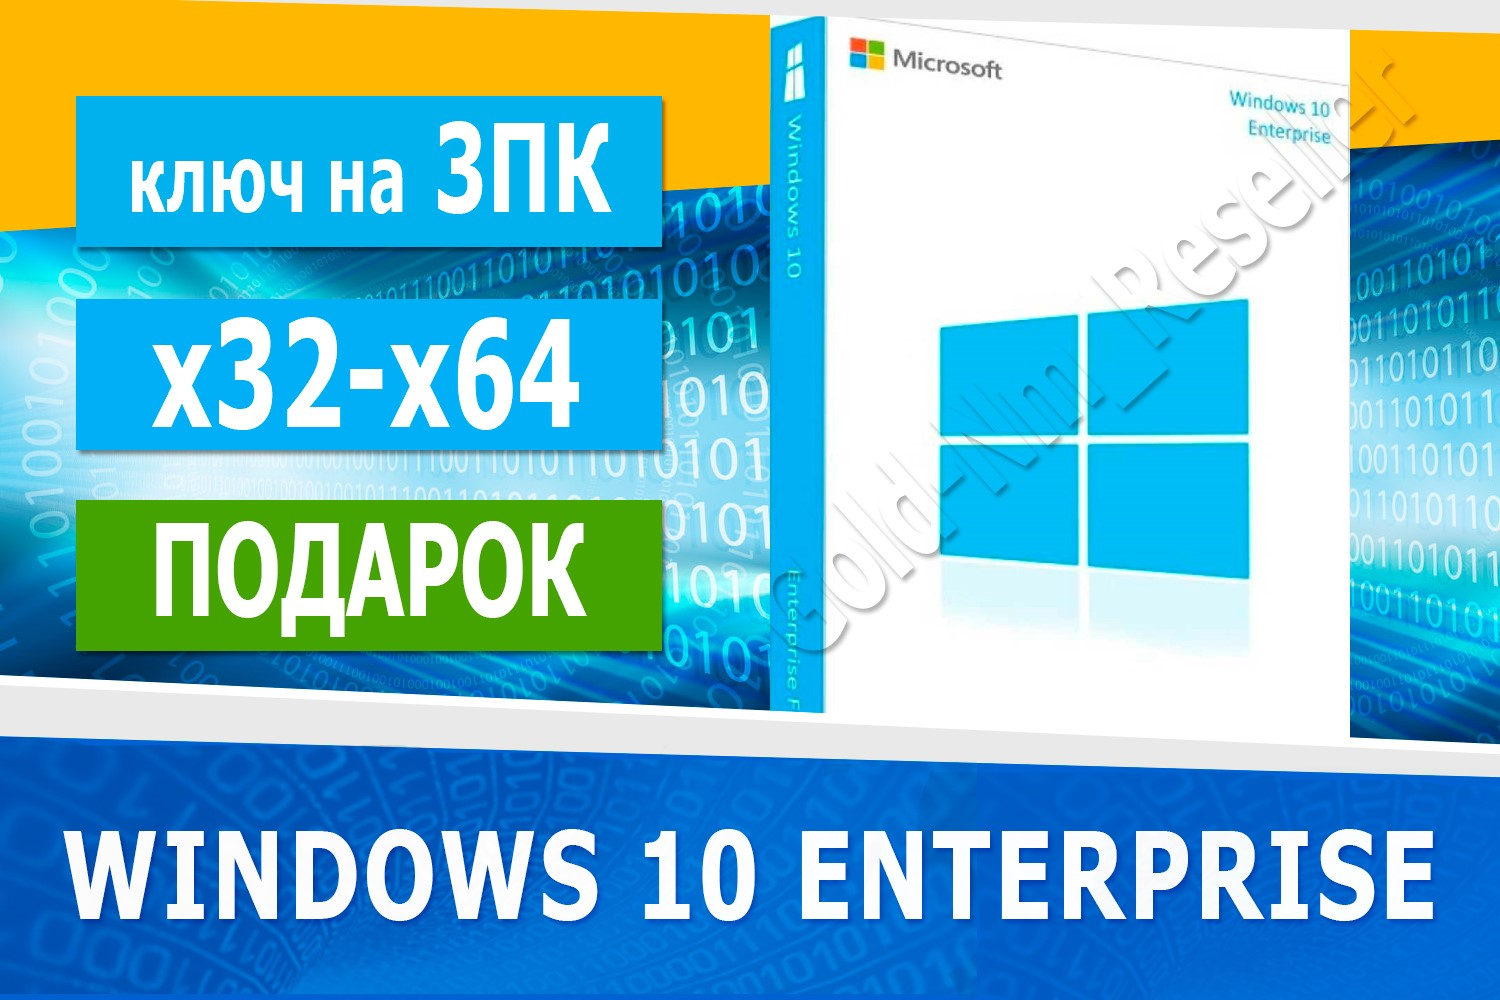 Windows 10 Enterprise (x32-x64) 3 ПК + iso + бонус